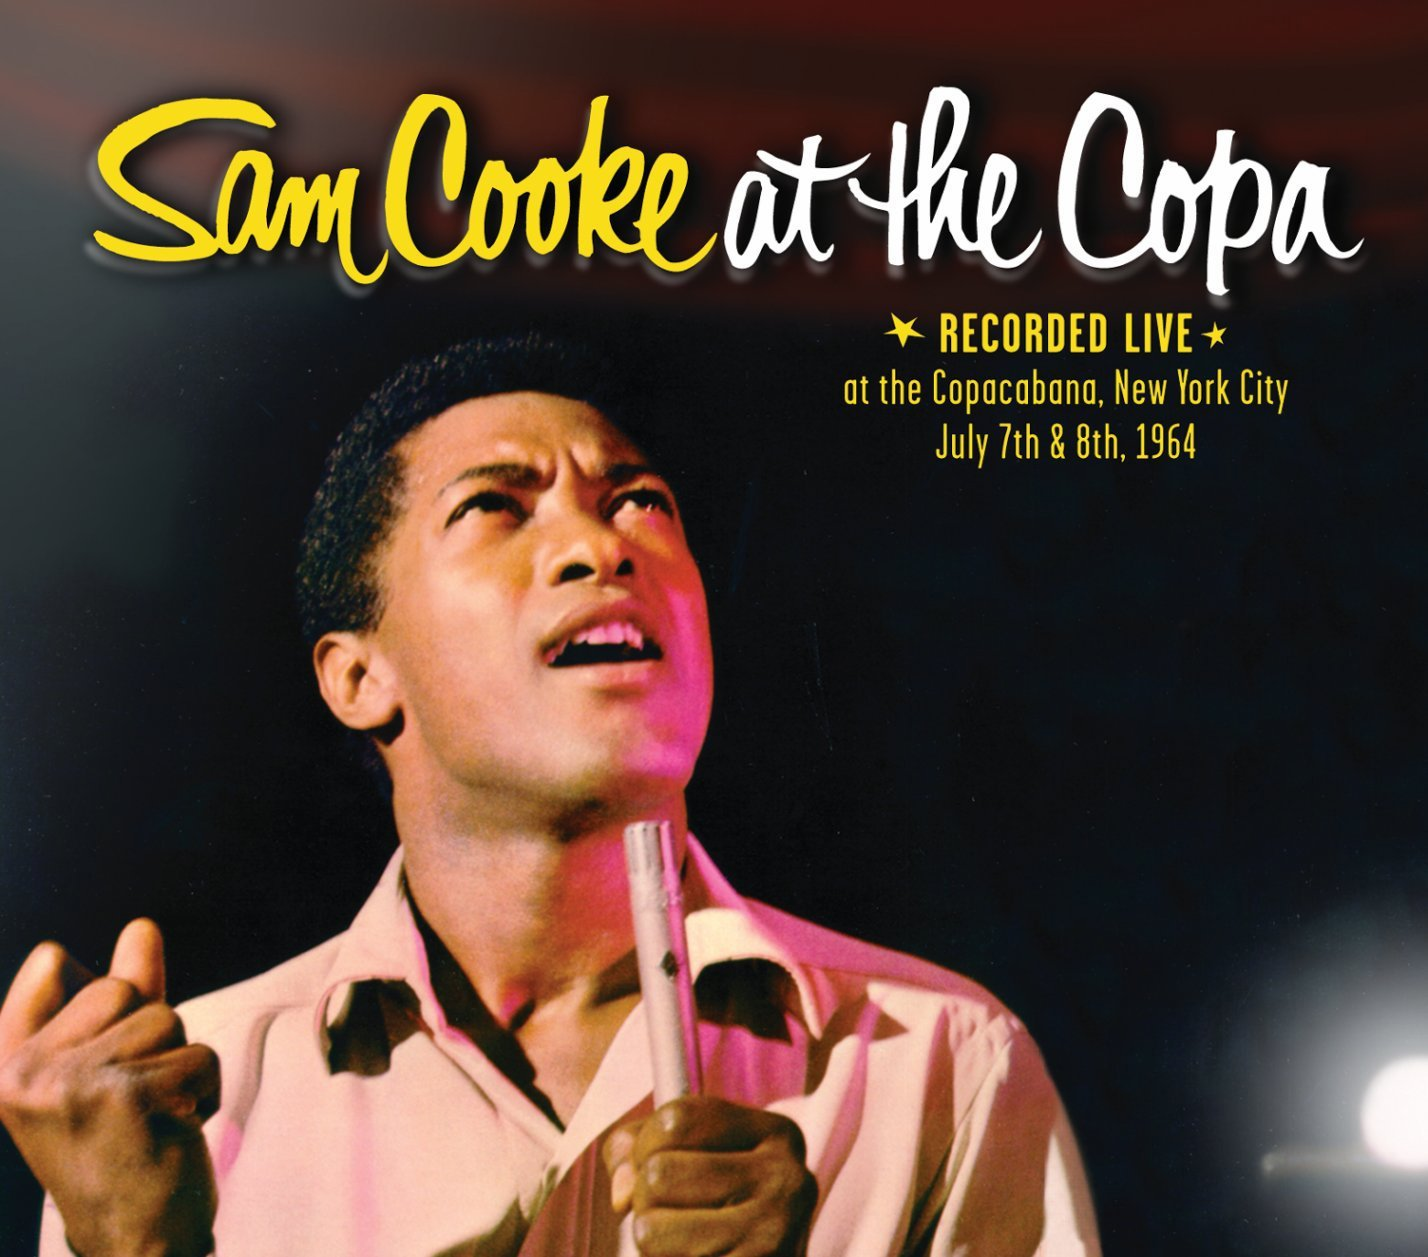 Sam Cooke at the Copa (1964)